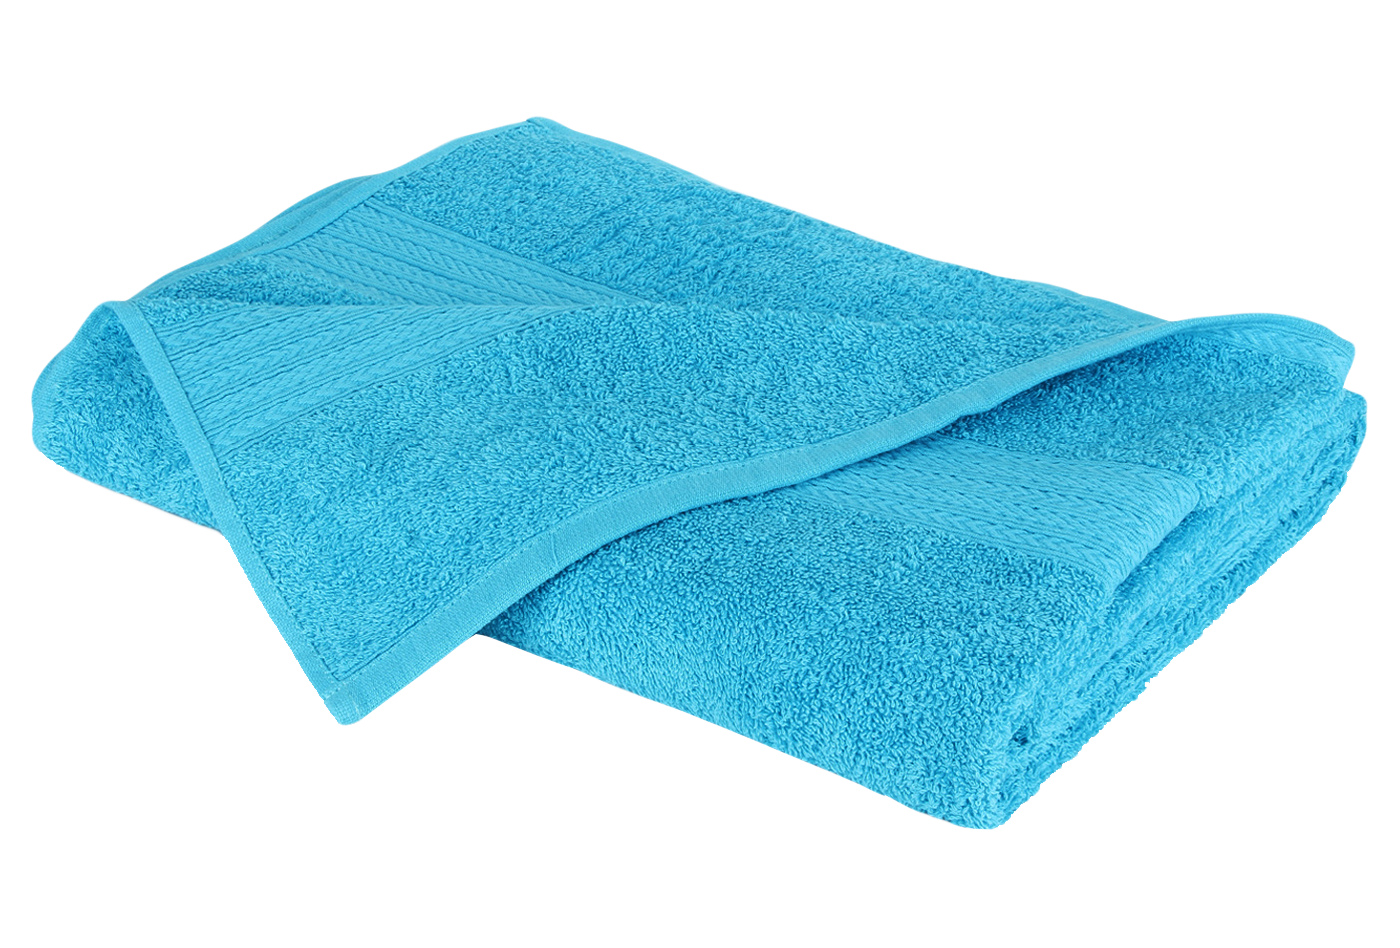 Towel transparent. Spa png image best